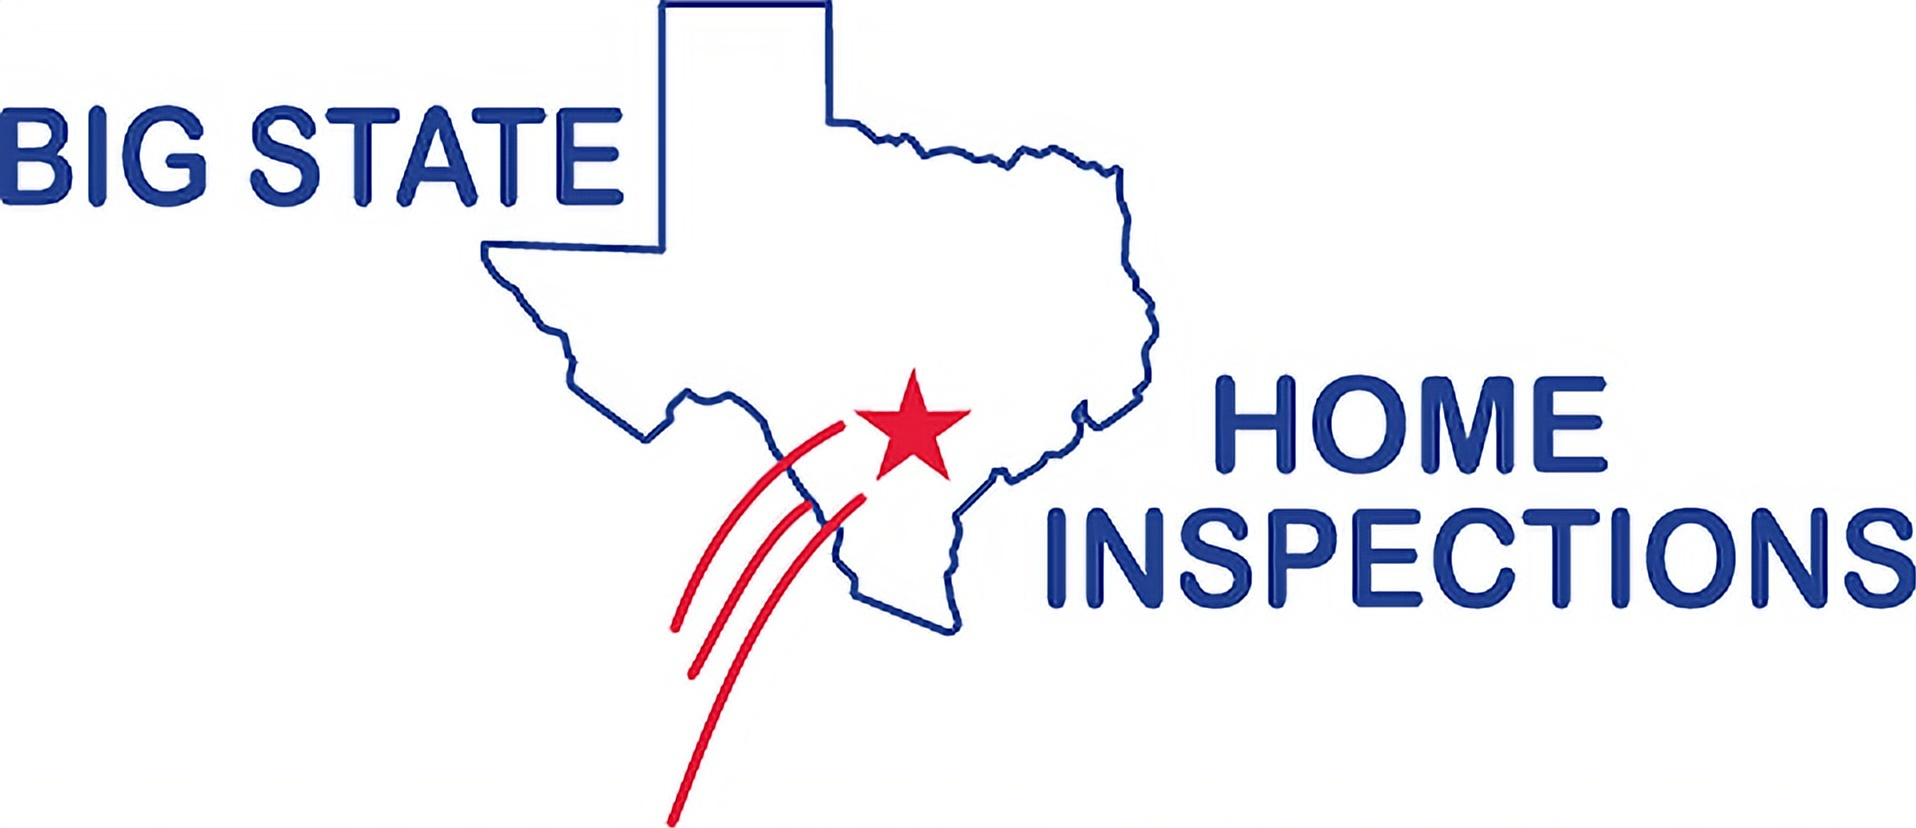 Big state inspections  logo 2 color png2 upscaled illustration x4